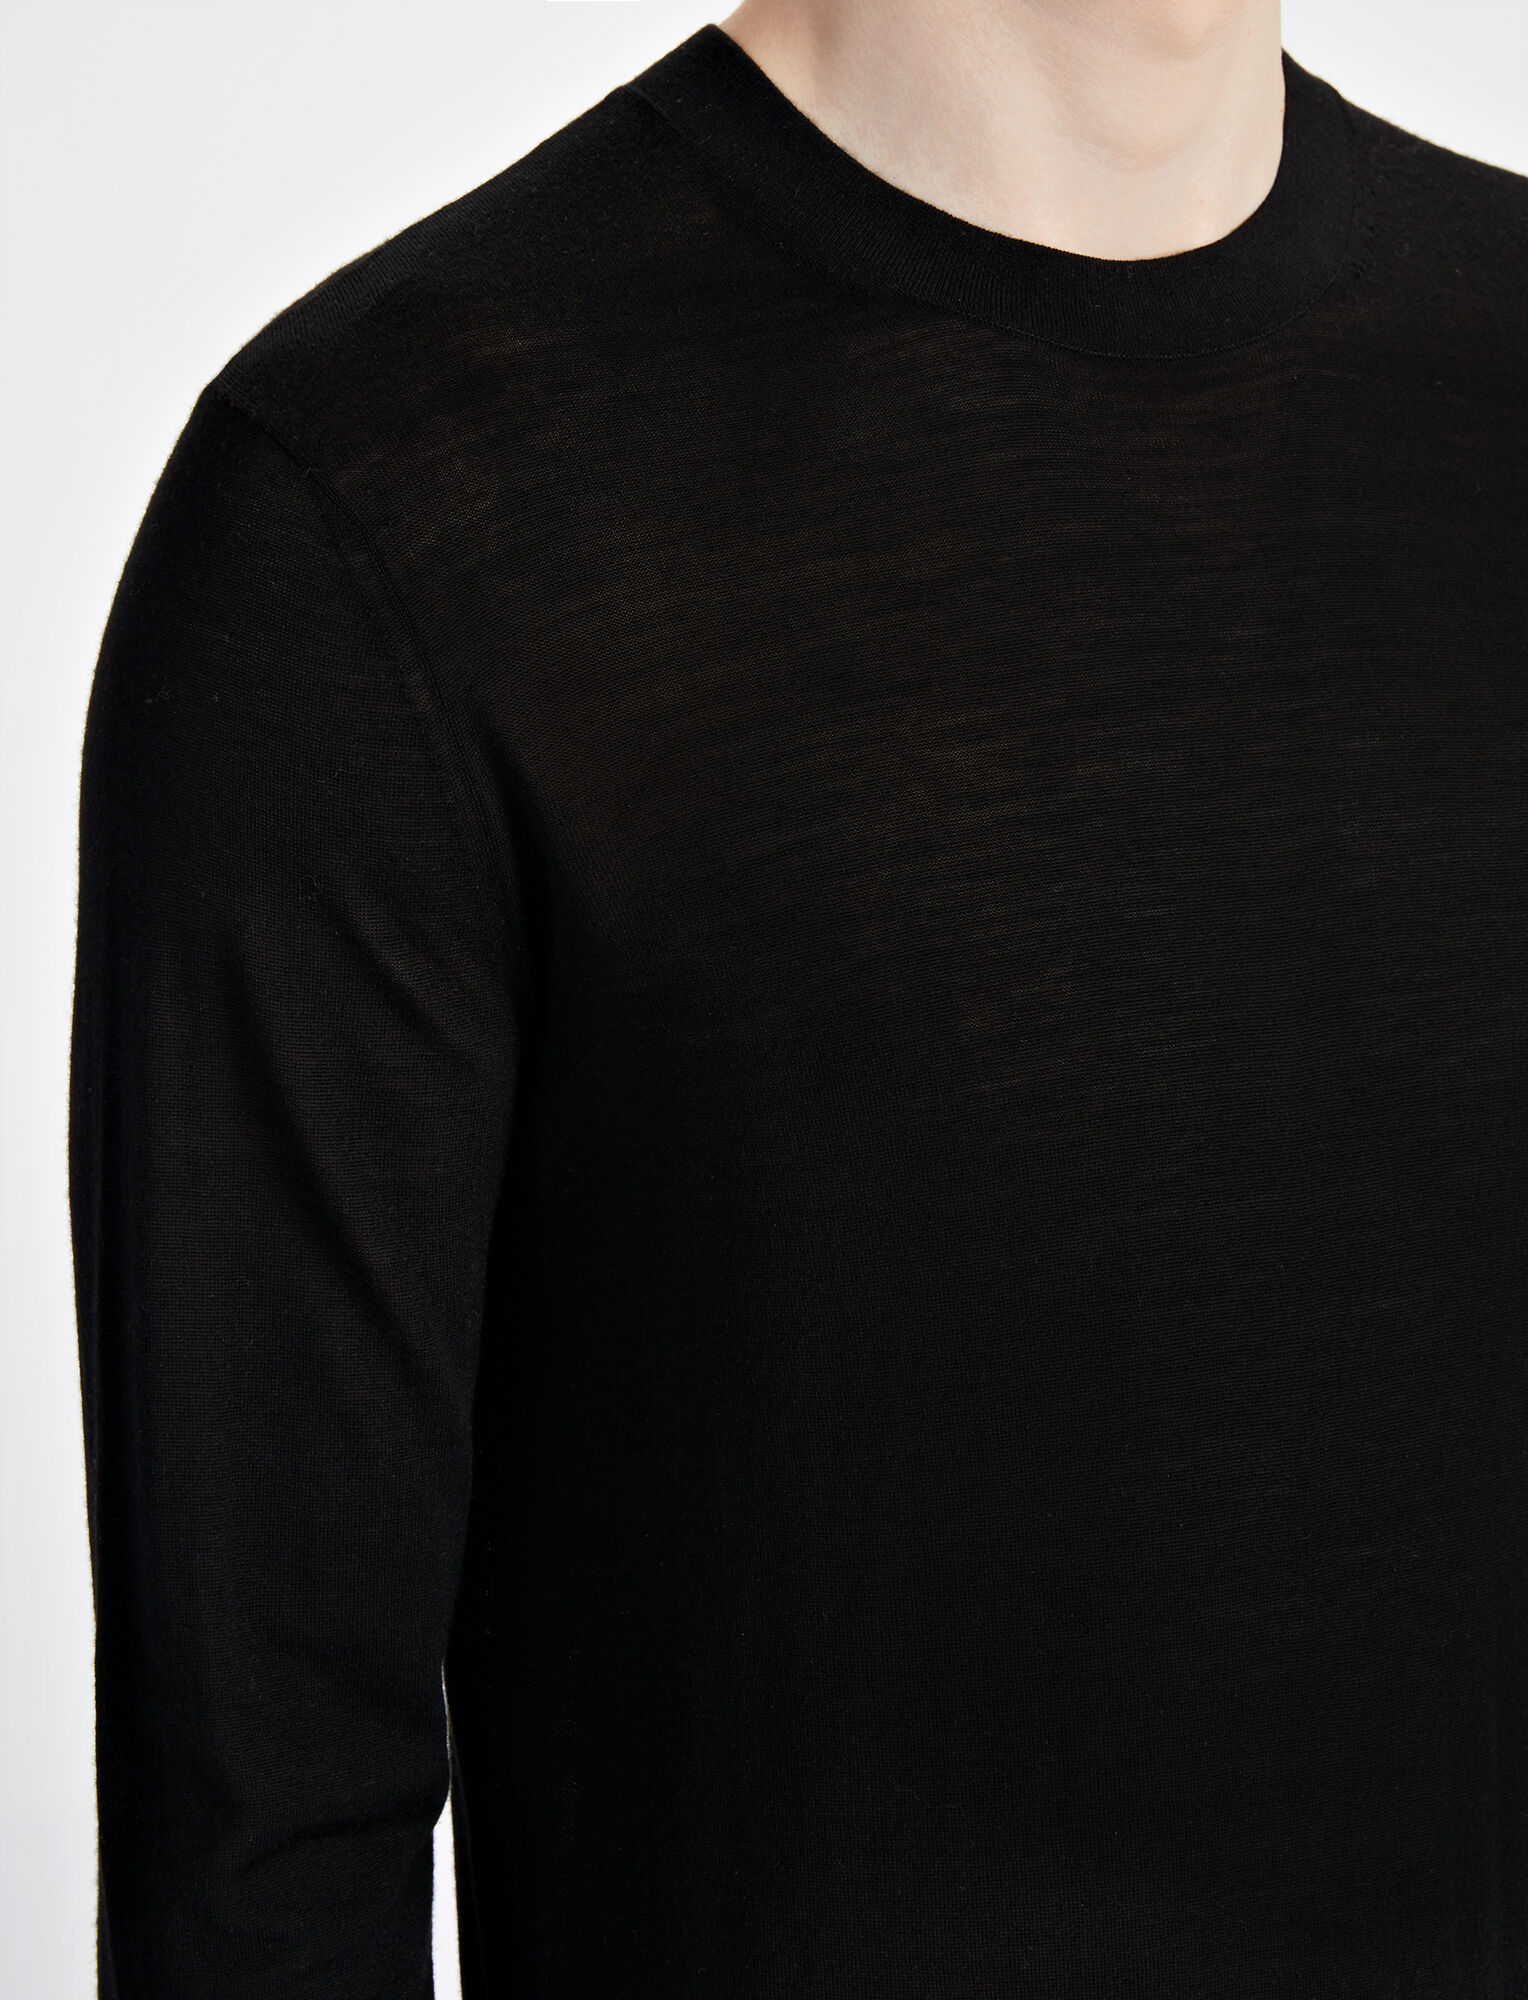 Joseph, Light Merinos Sweater, in BLACK